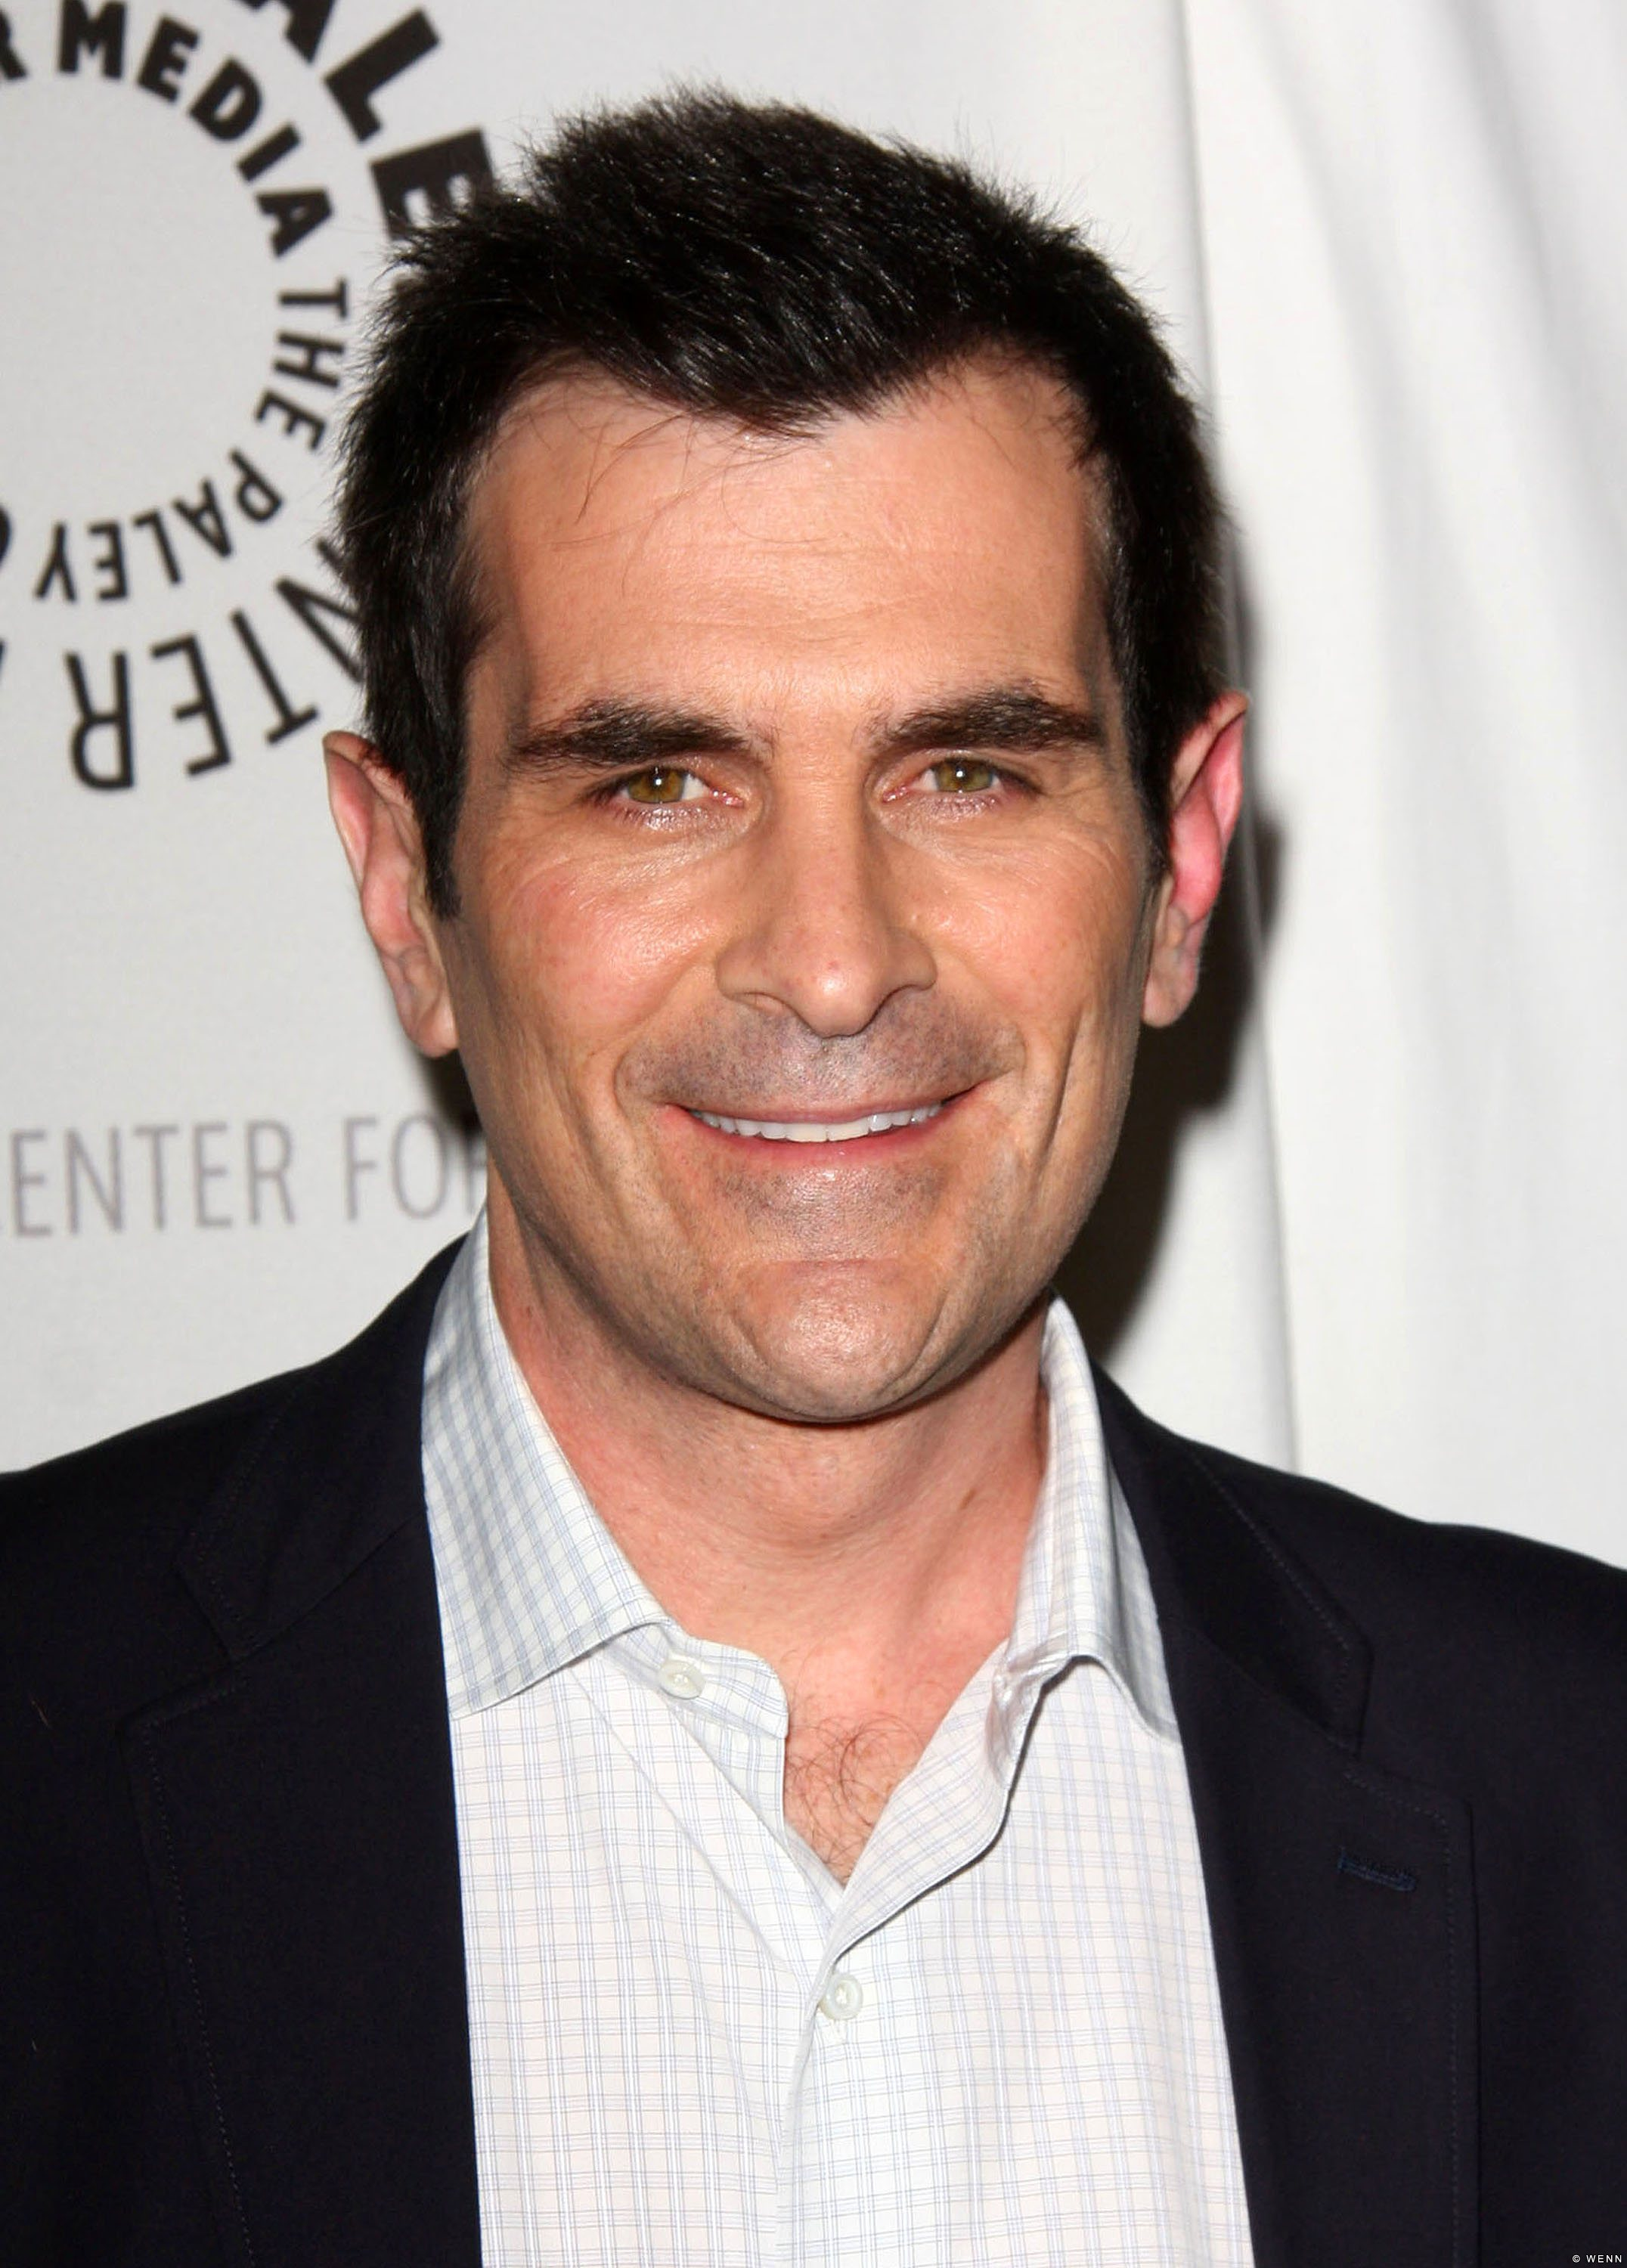 ty burrell instagramty burrell wife, ty burrell height, ty burrell bryan cranston, ty burrell young, ty burrell instagram, ty burrell interview, ty burrell, ty burrell net worth, ty burrell black hawk down, ty burrell twitter, ty burrell family, ty burrell bar, ty burrell father, ty burrell modern family, ty burrell emmy, ty burrell chin scar, ty burrell muppets, ty burrell scar, ty burrell utah, ty burrell imdb